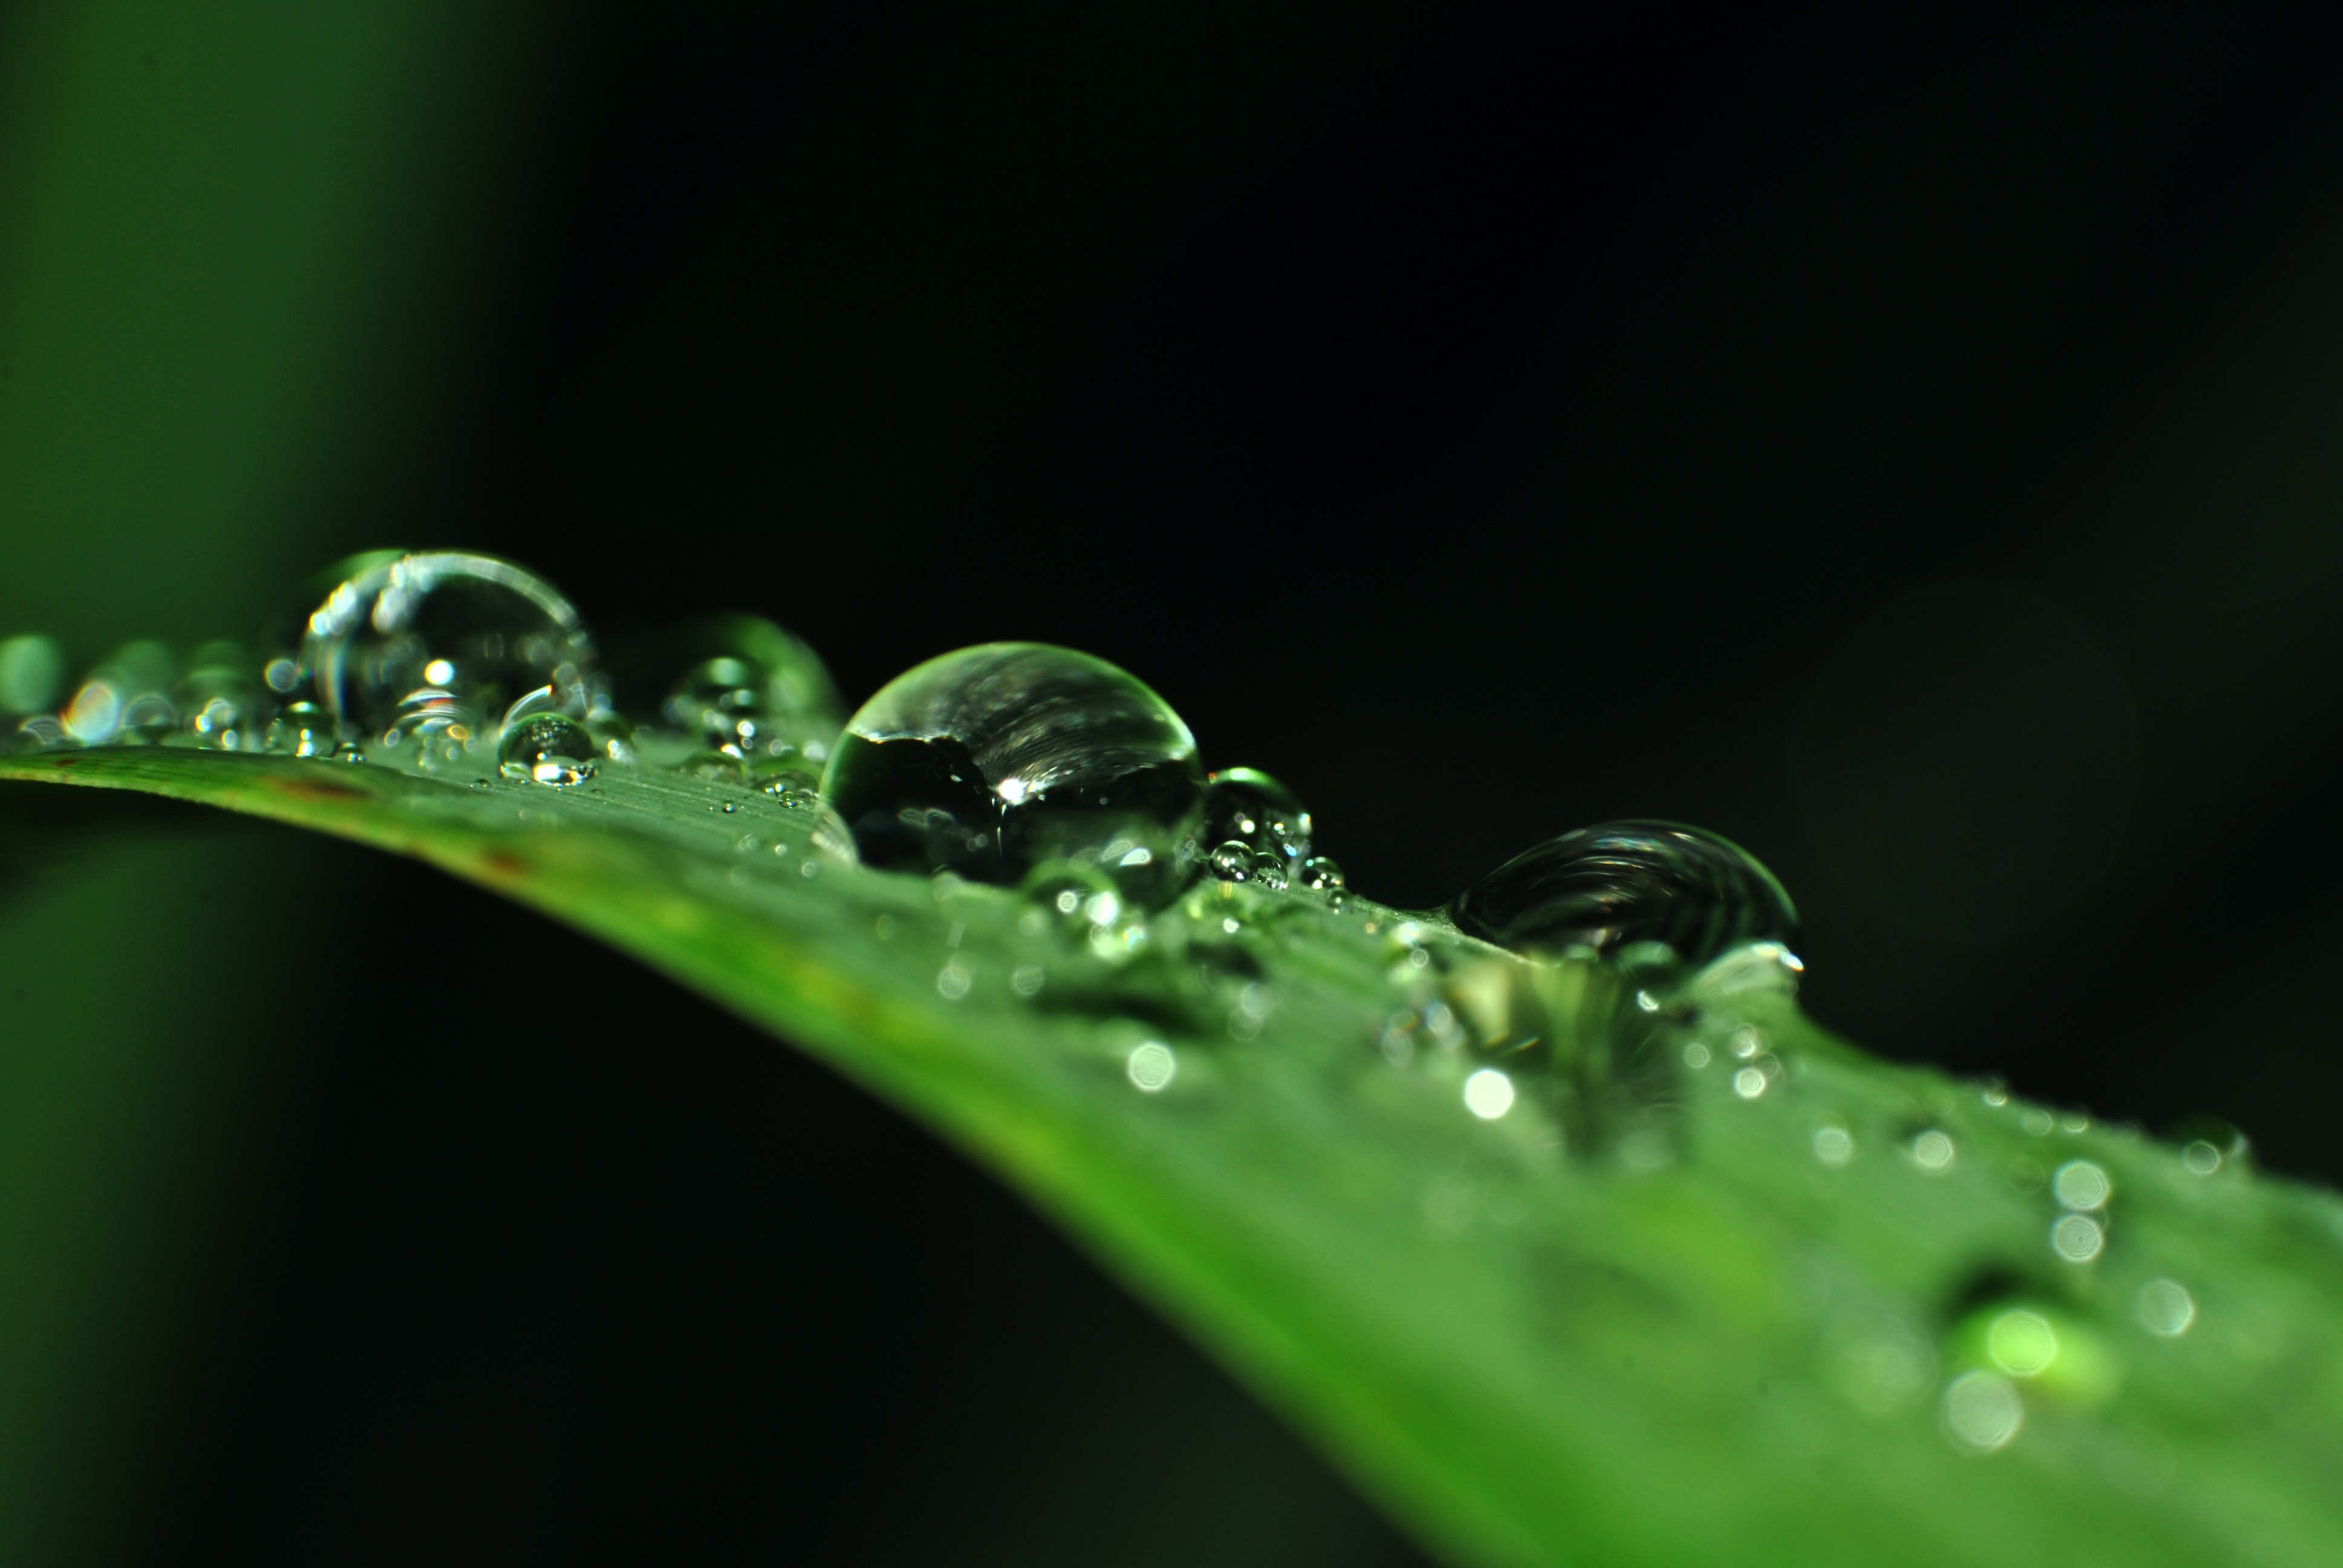 Water Droplets On Green Leaf 183 Free Stock Photo